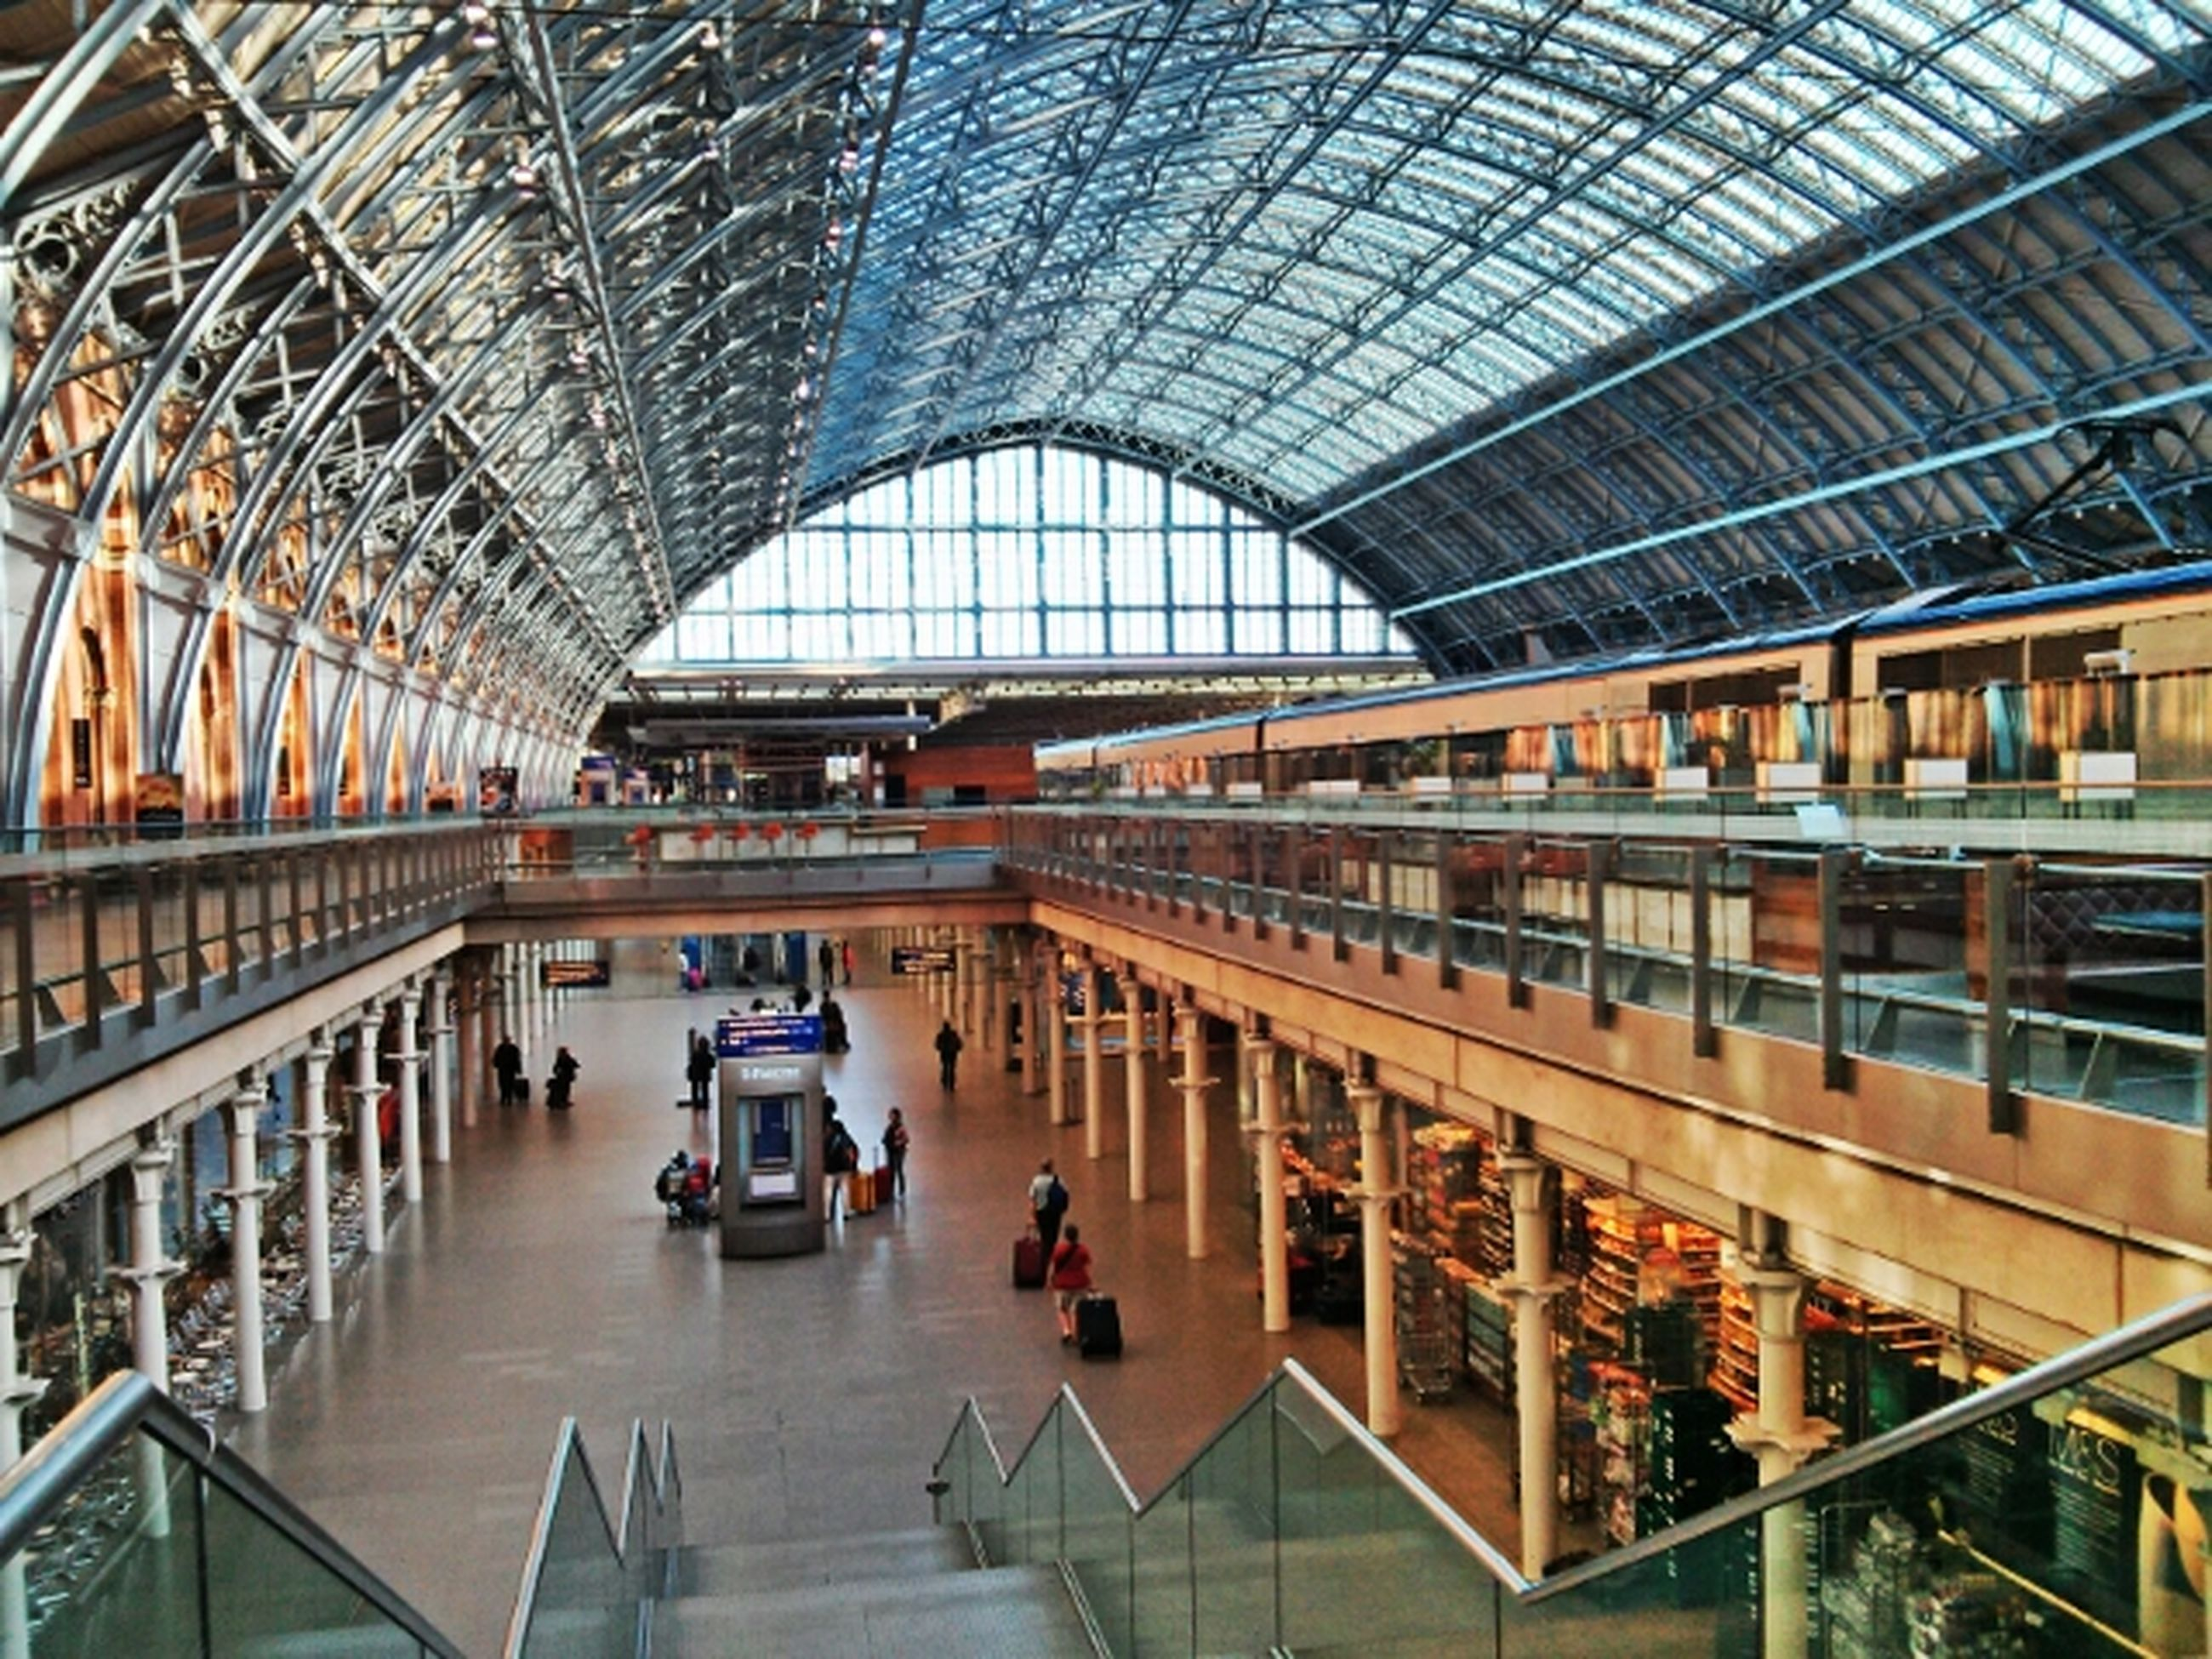 indoors, architecture, built structure, incidental people, lifestyles, transportation, men, person, travel, modern, railing, ceiling, high angle view, leisure activity, railroad station, shopping mall, large group of people, city life, public transportation